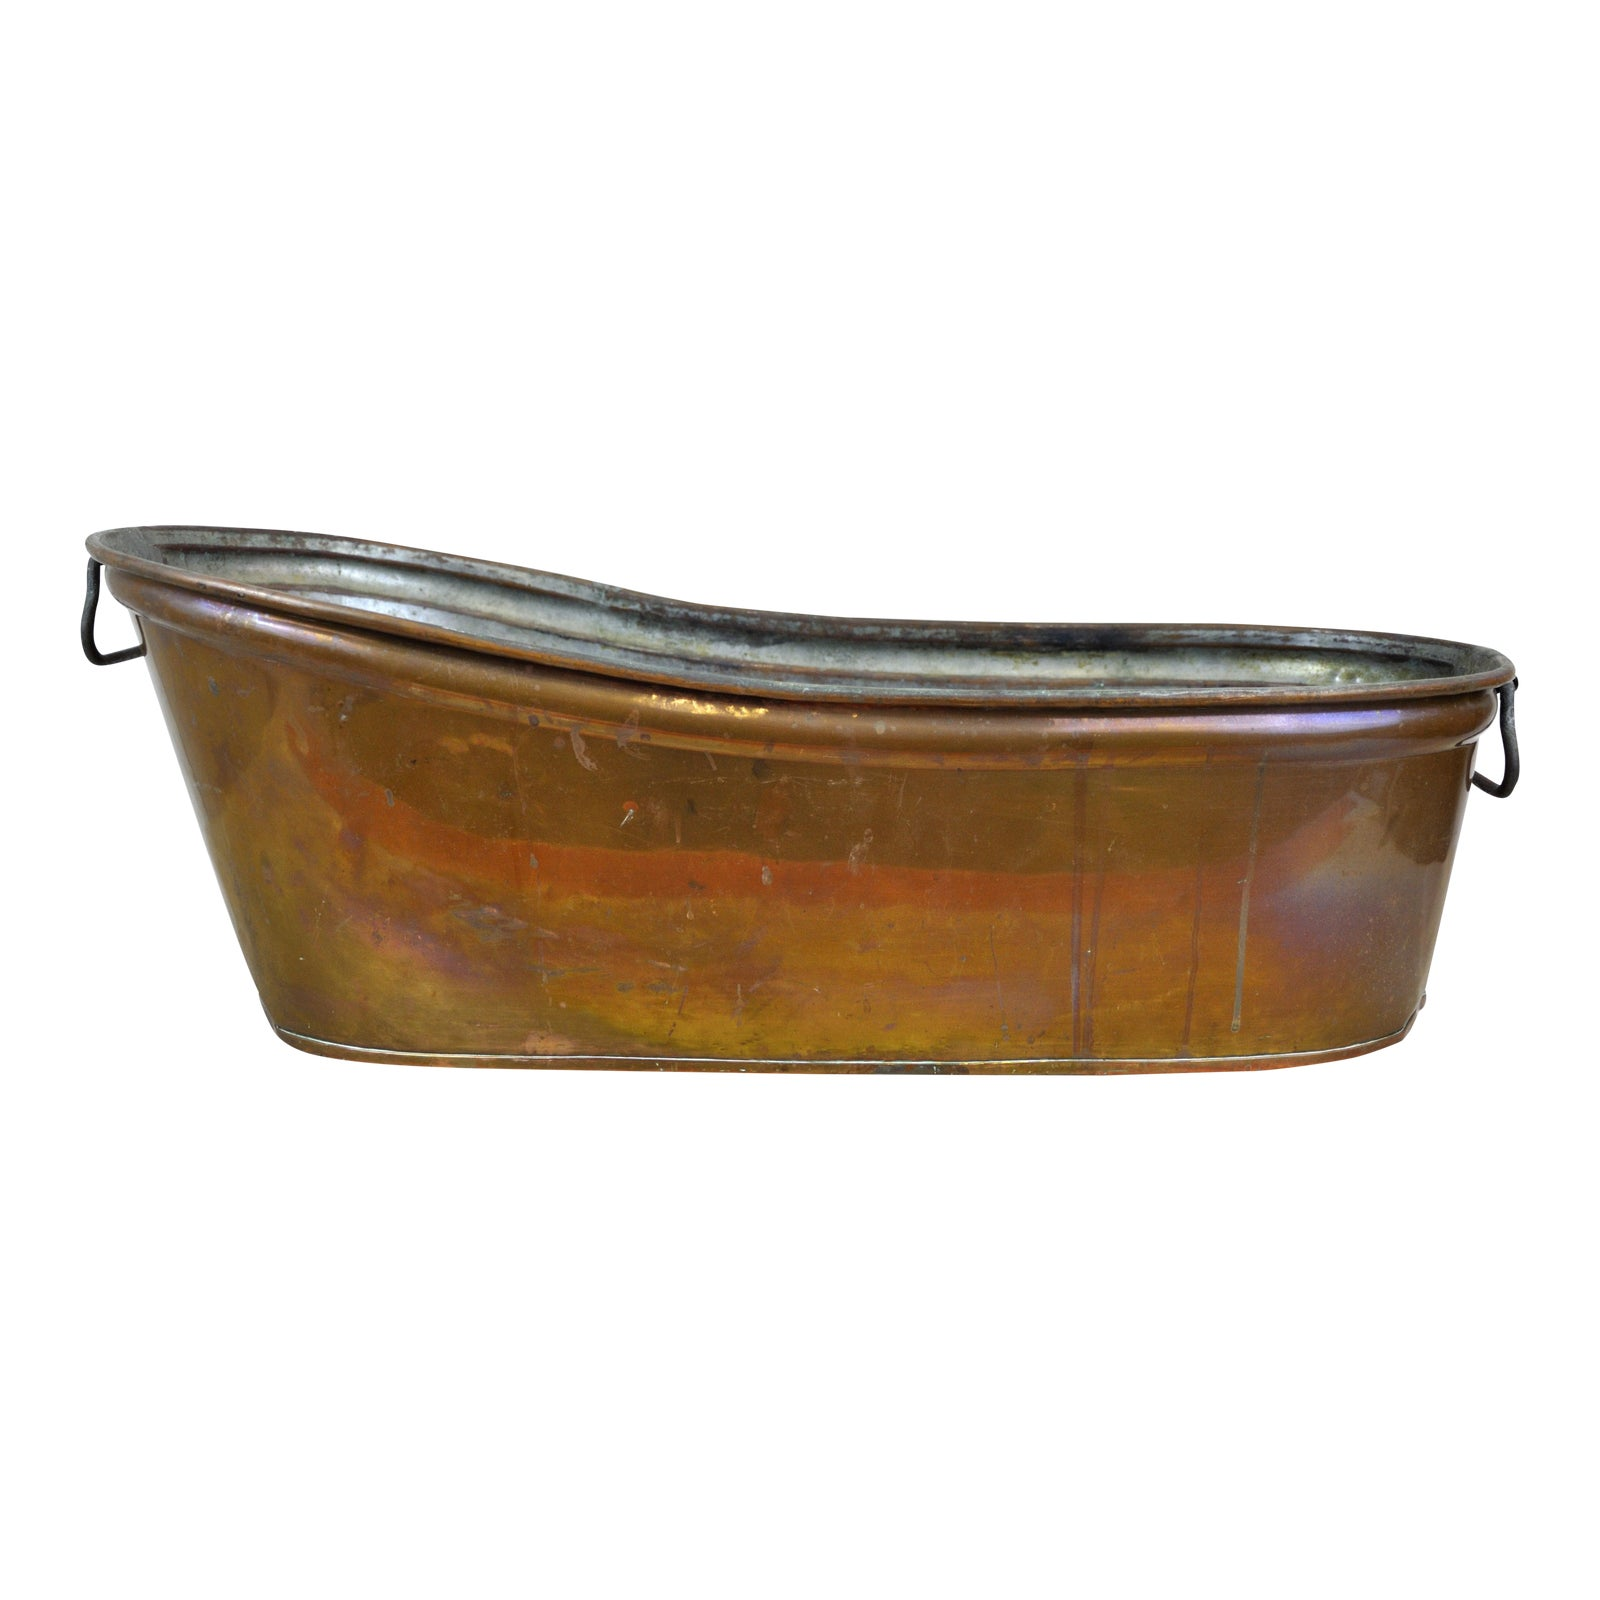 Antique Baby Copper Bath Tub With Nickel Interior | Chairish